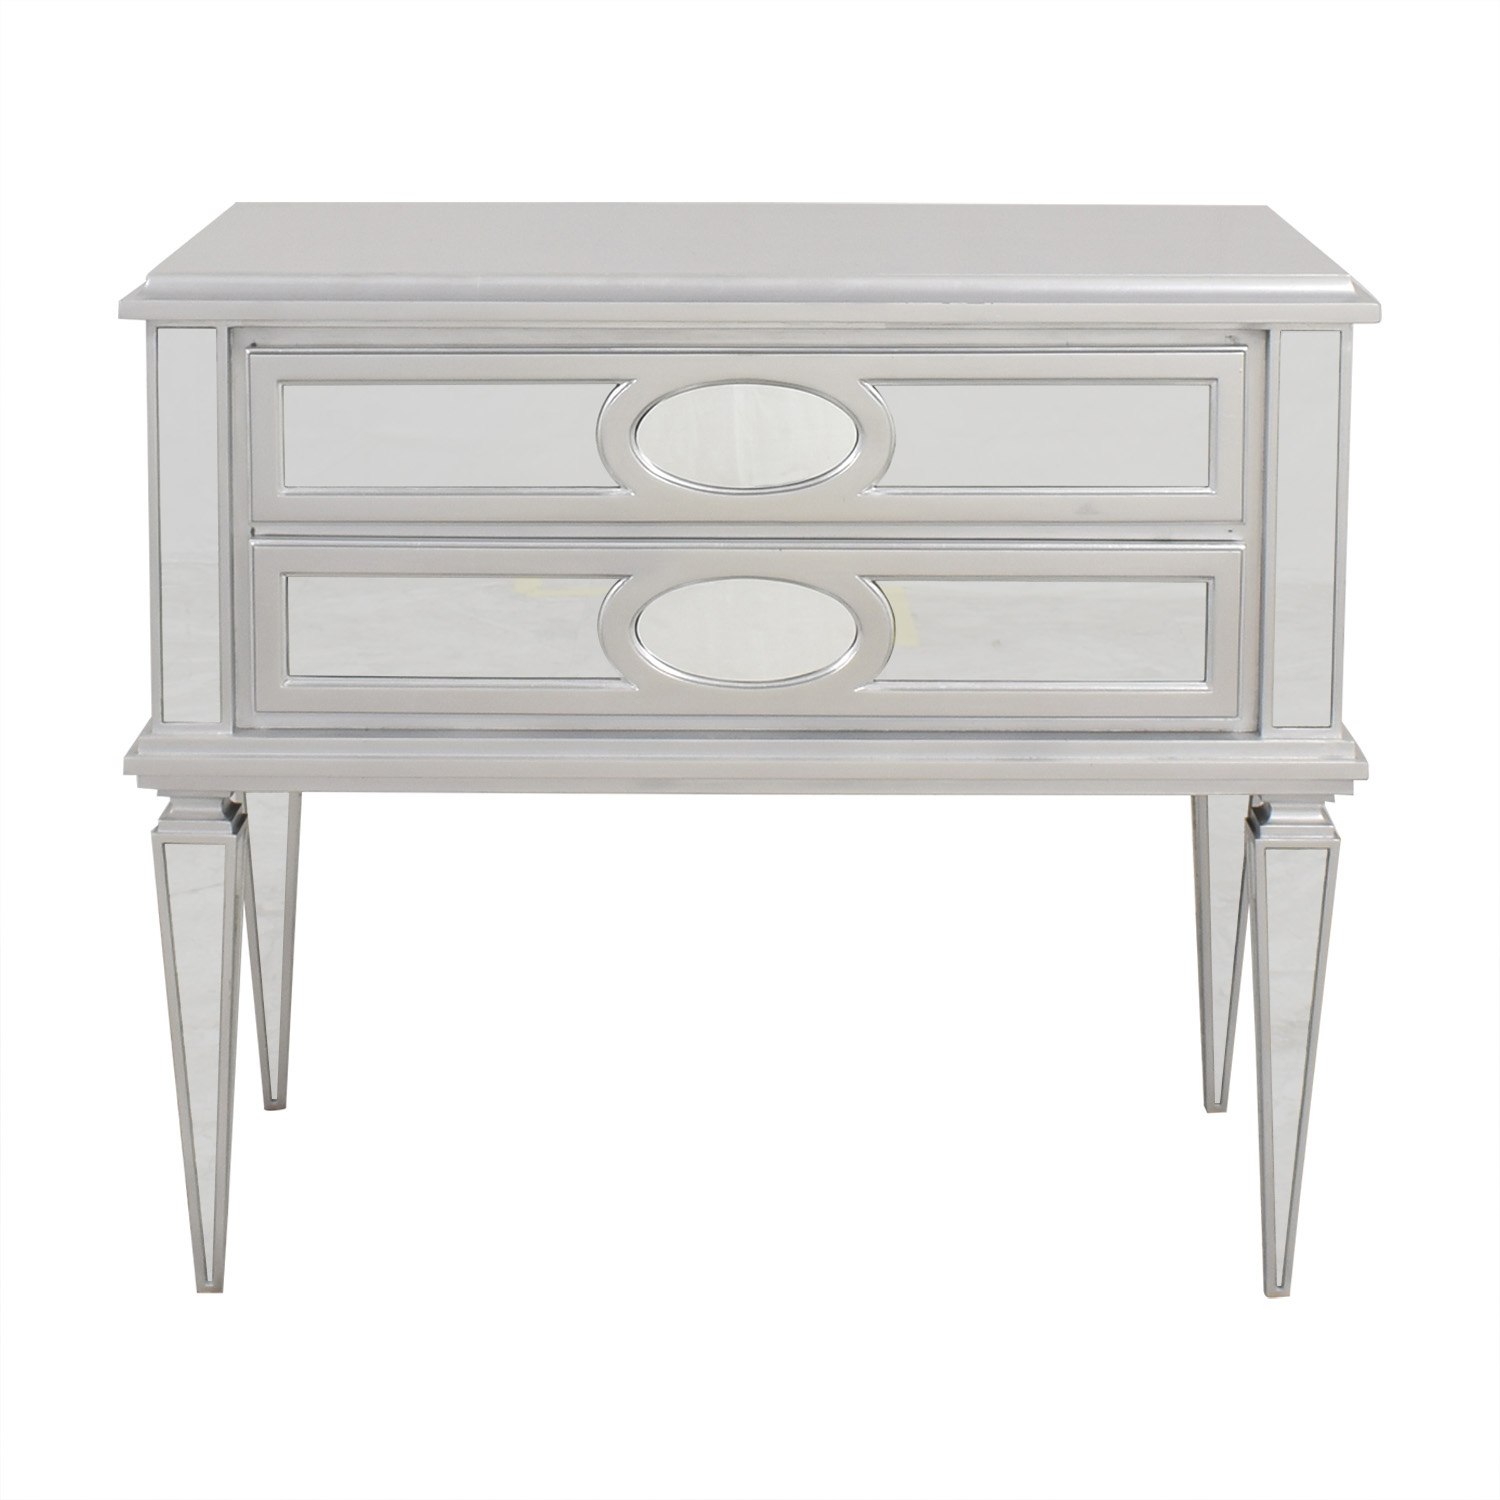 Christopher Guy Christopher Guy Montmartre Chest of Drawers silver